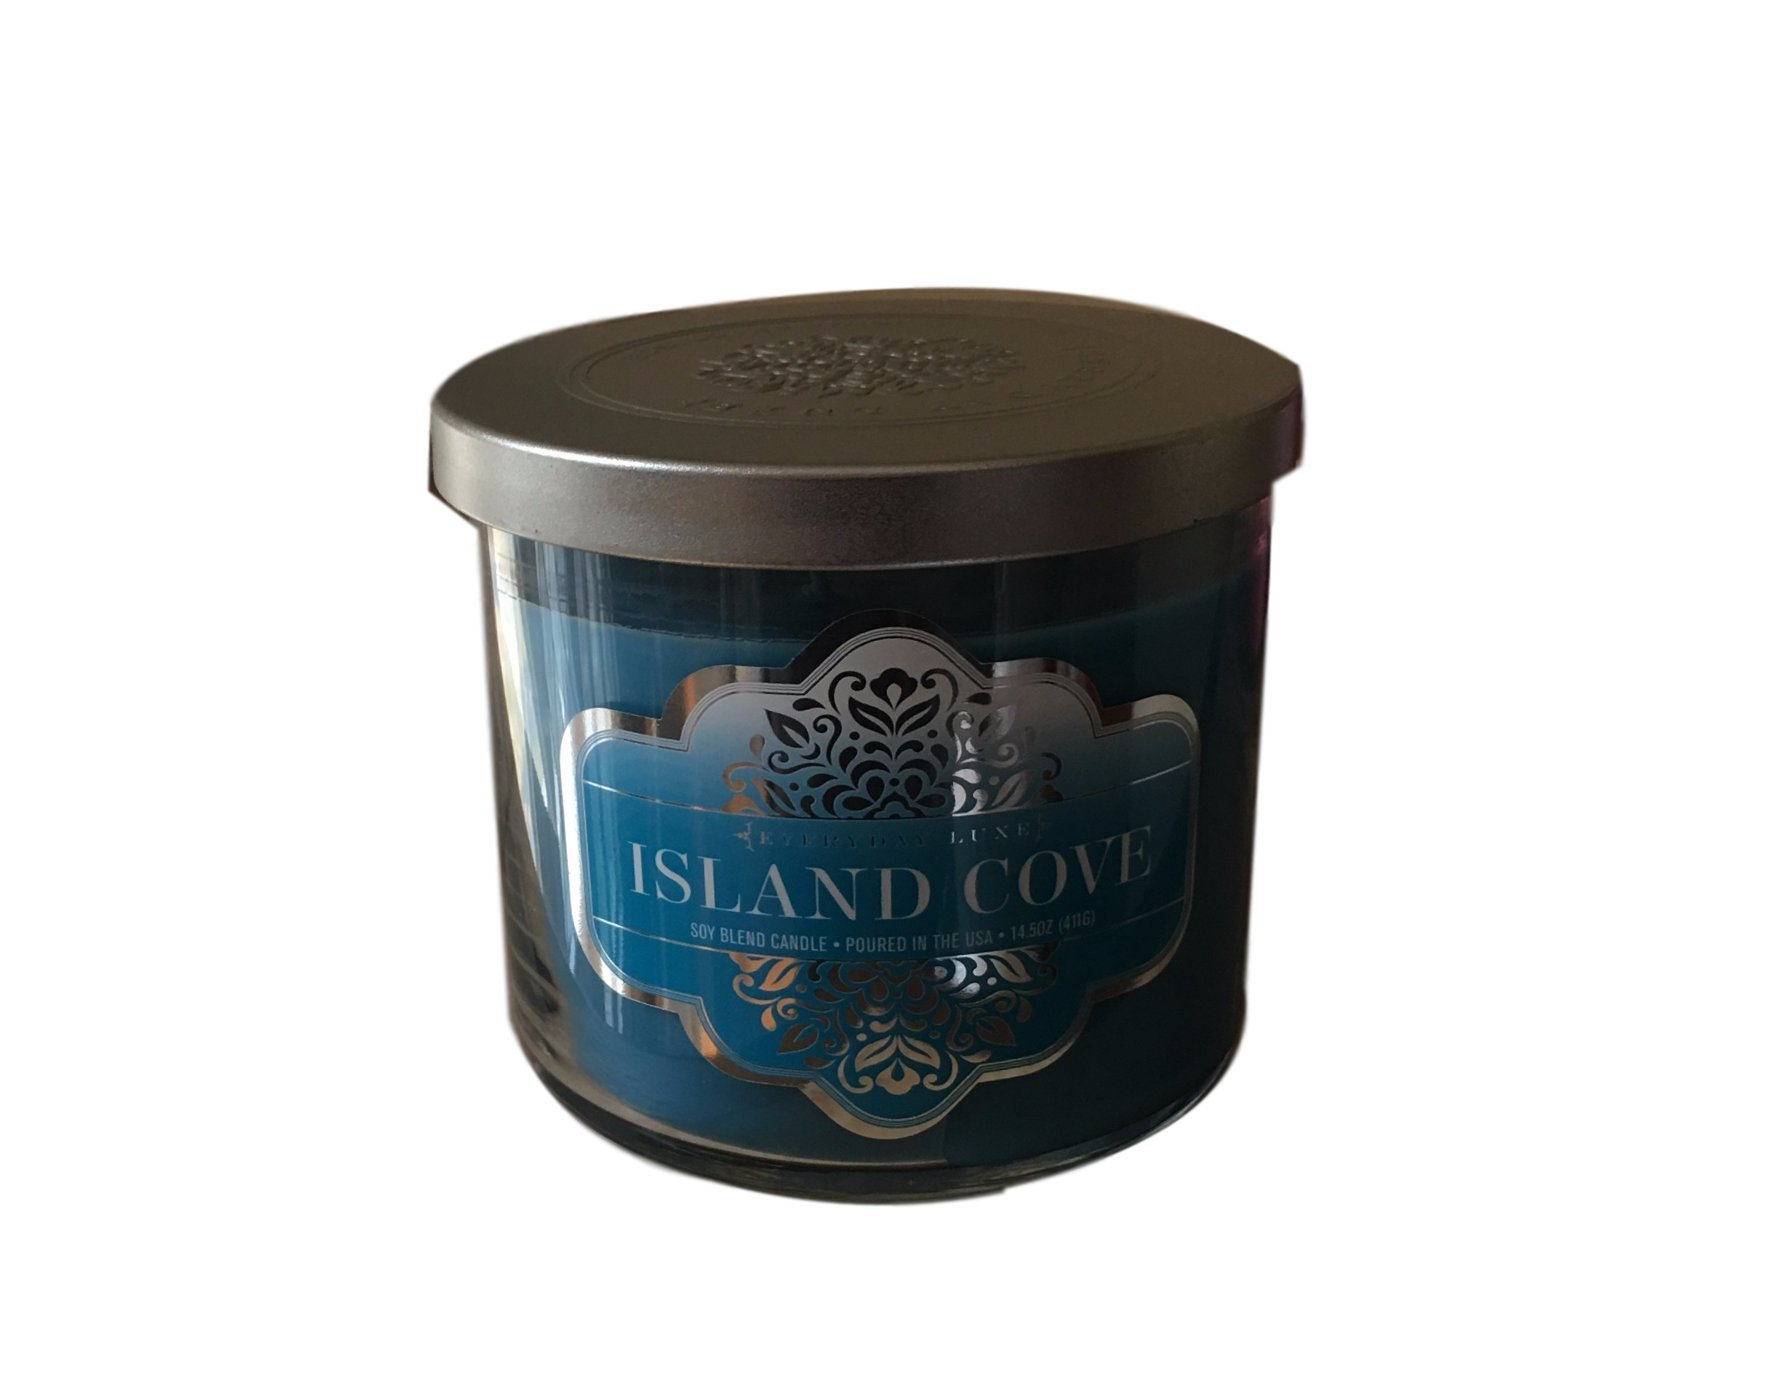 EVERYDAY LUXE Island Cove Scented Highly Fragranced Large 3 Wick Candle